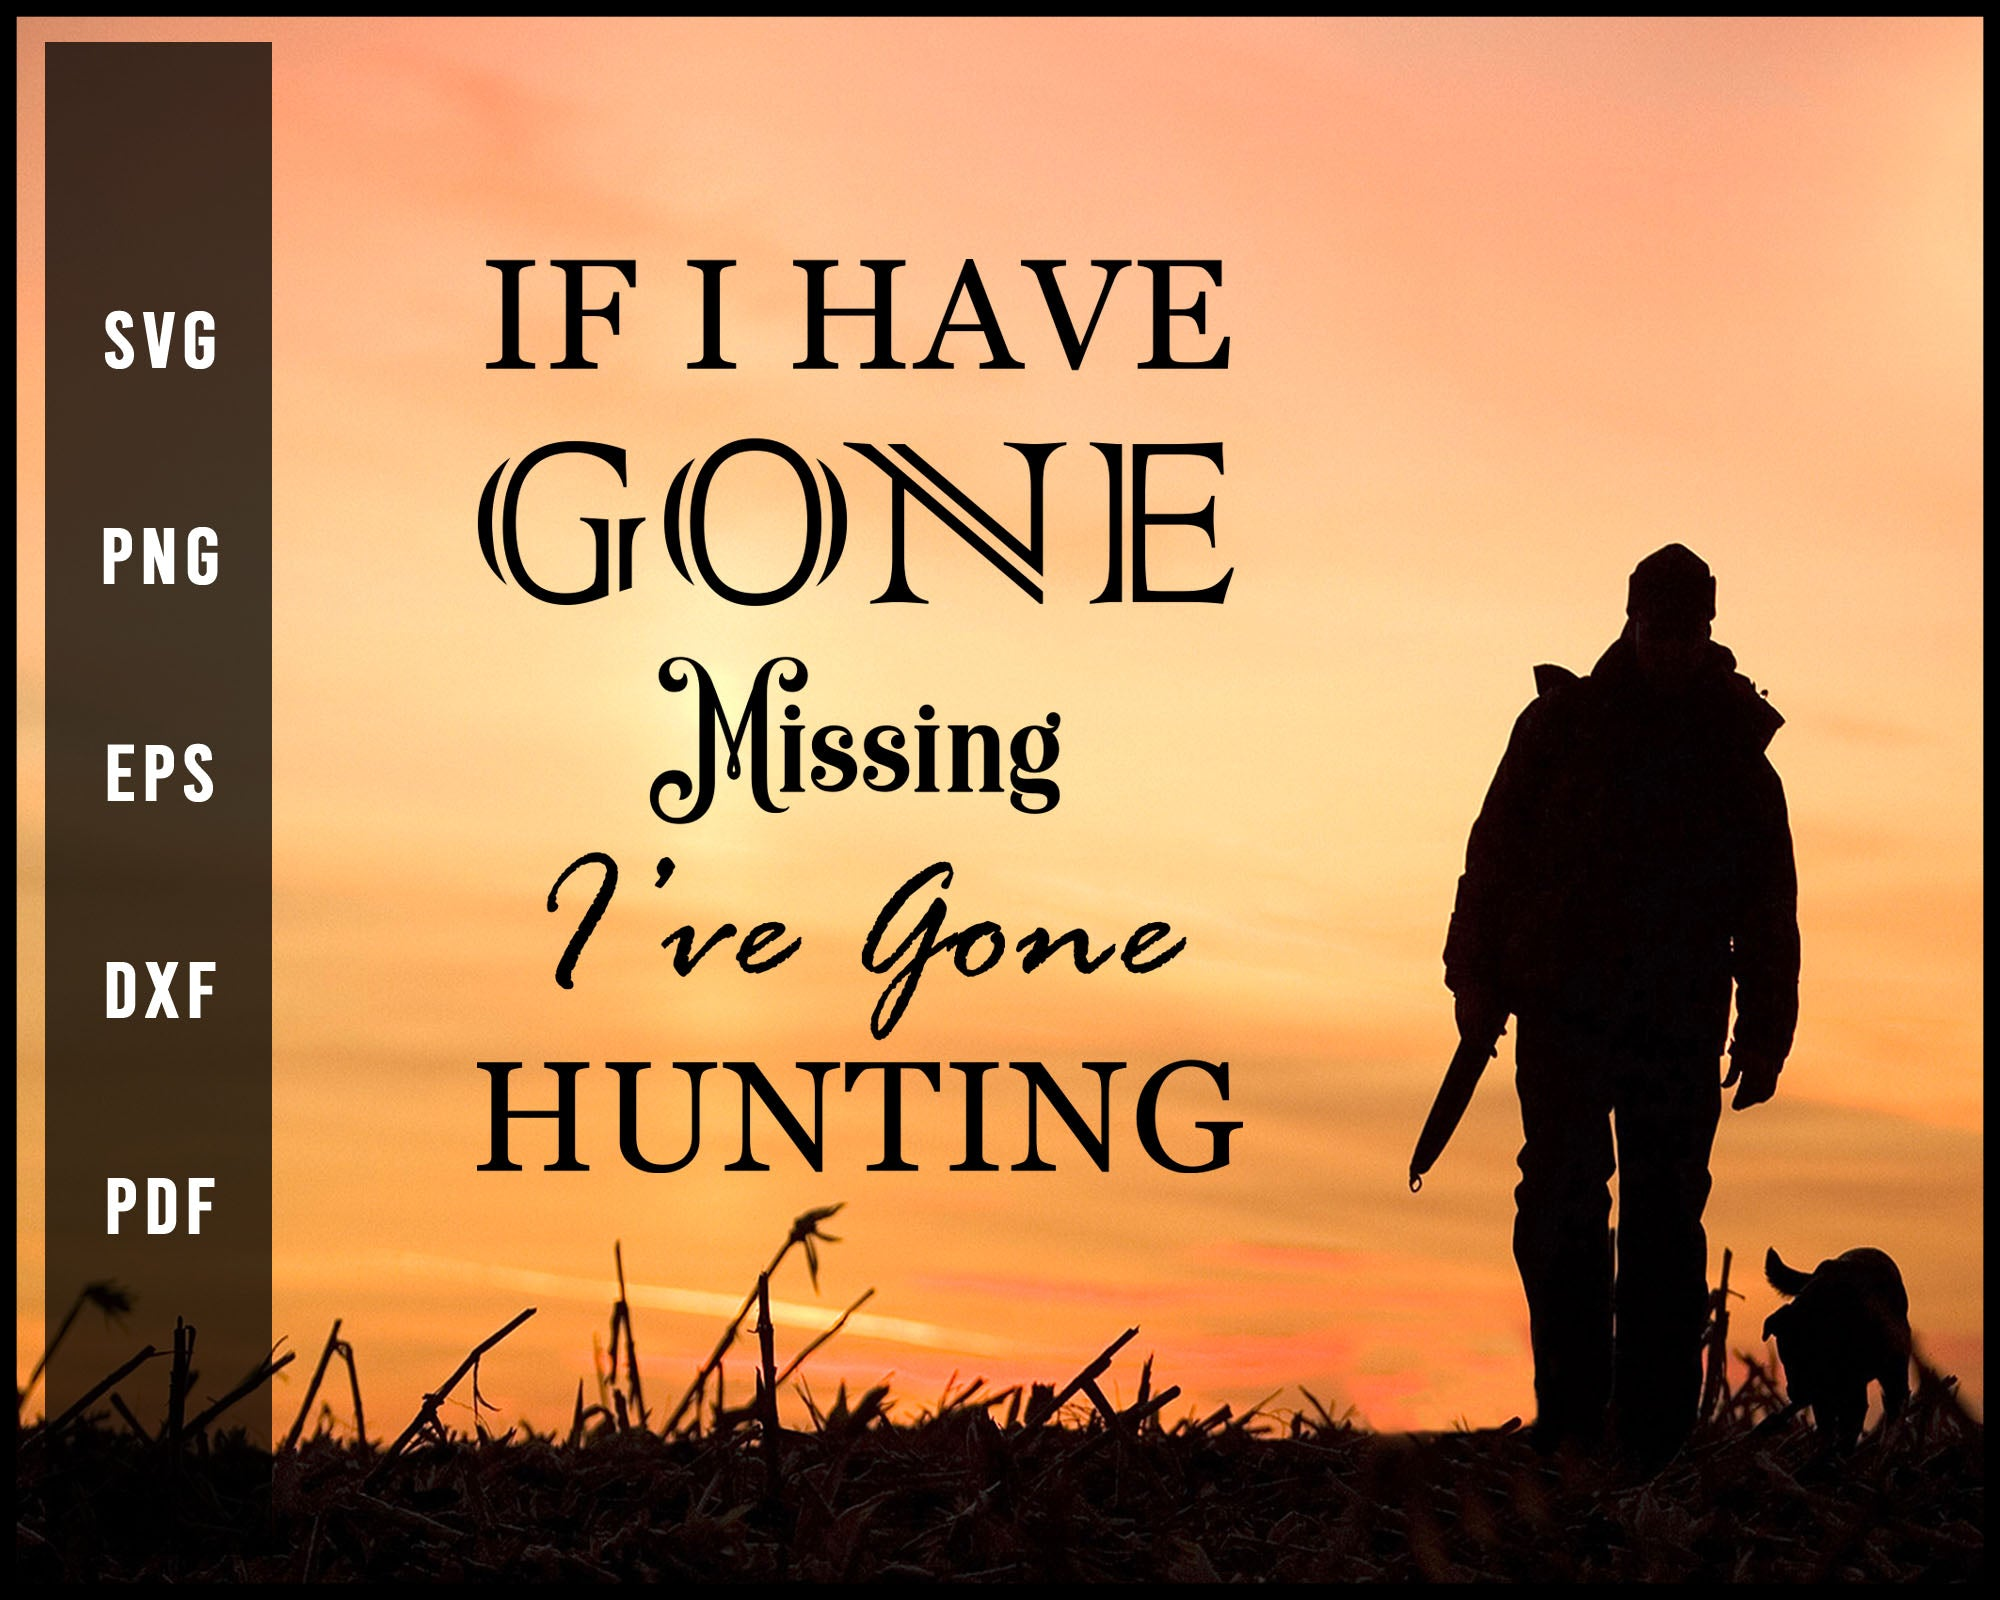 If I Have Gone Missing I've Gone Hunting svg png Silhouette Designs For Cricut And Printable Files